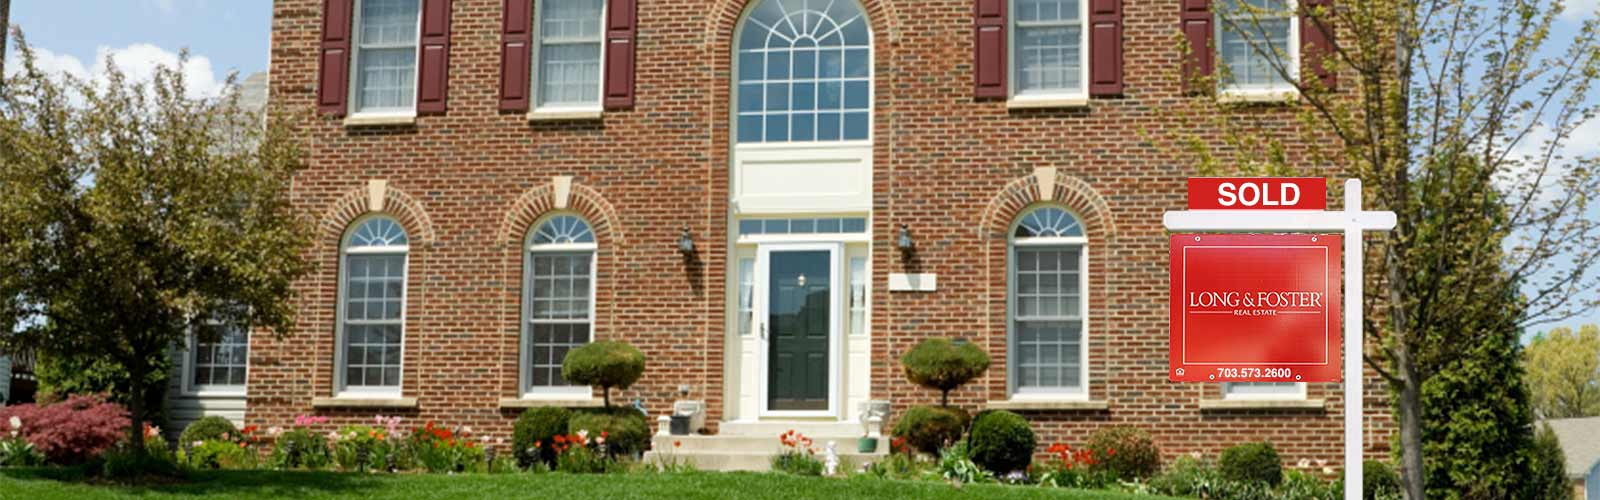 Buying Help - Fairfax County Homes For Sale